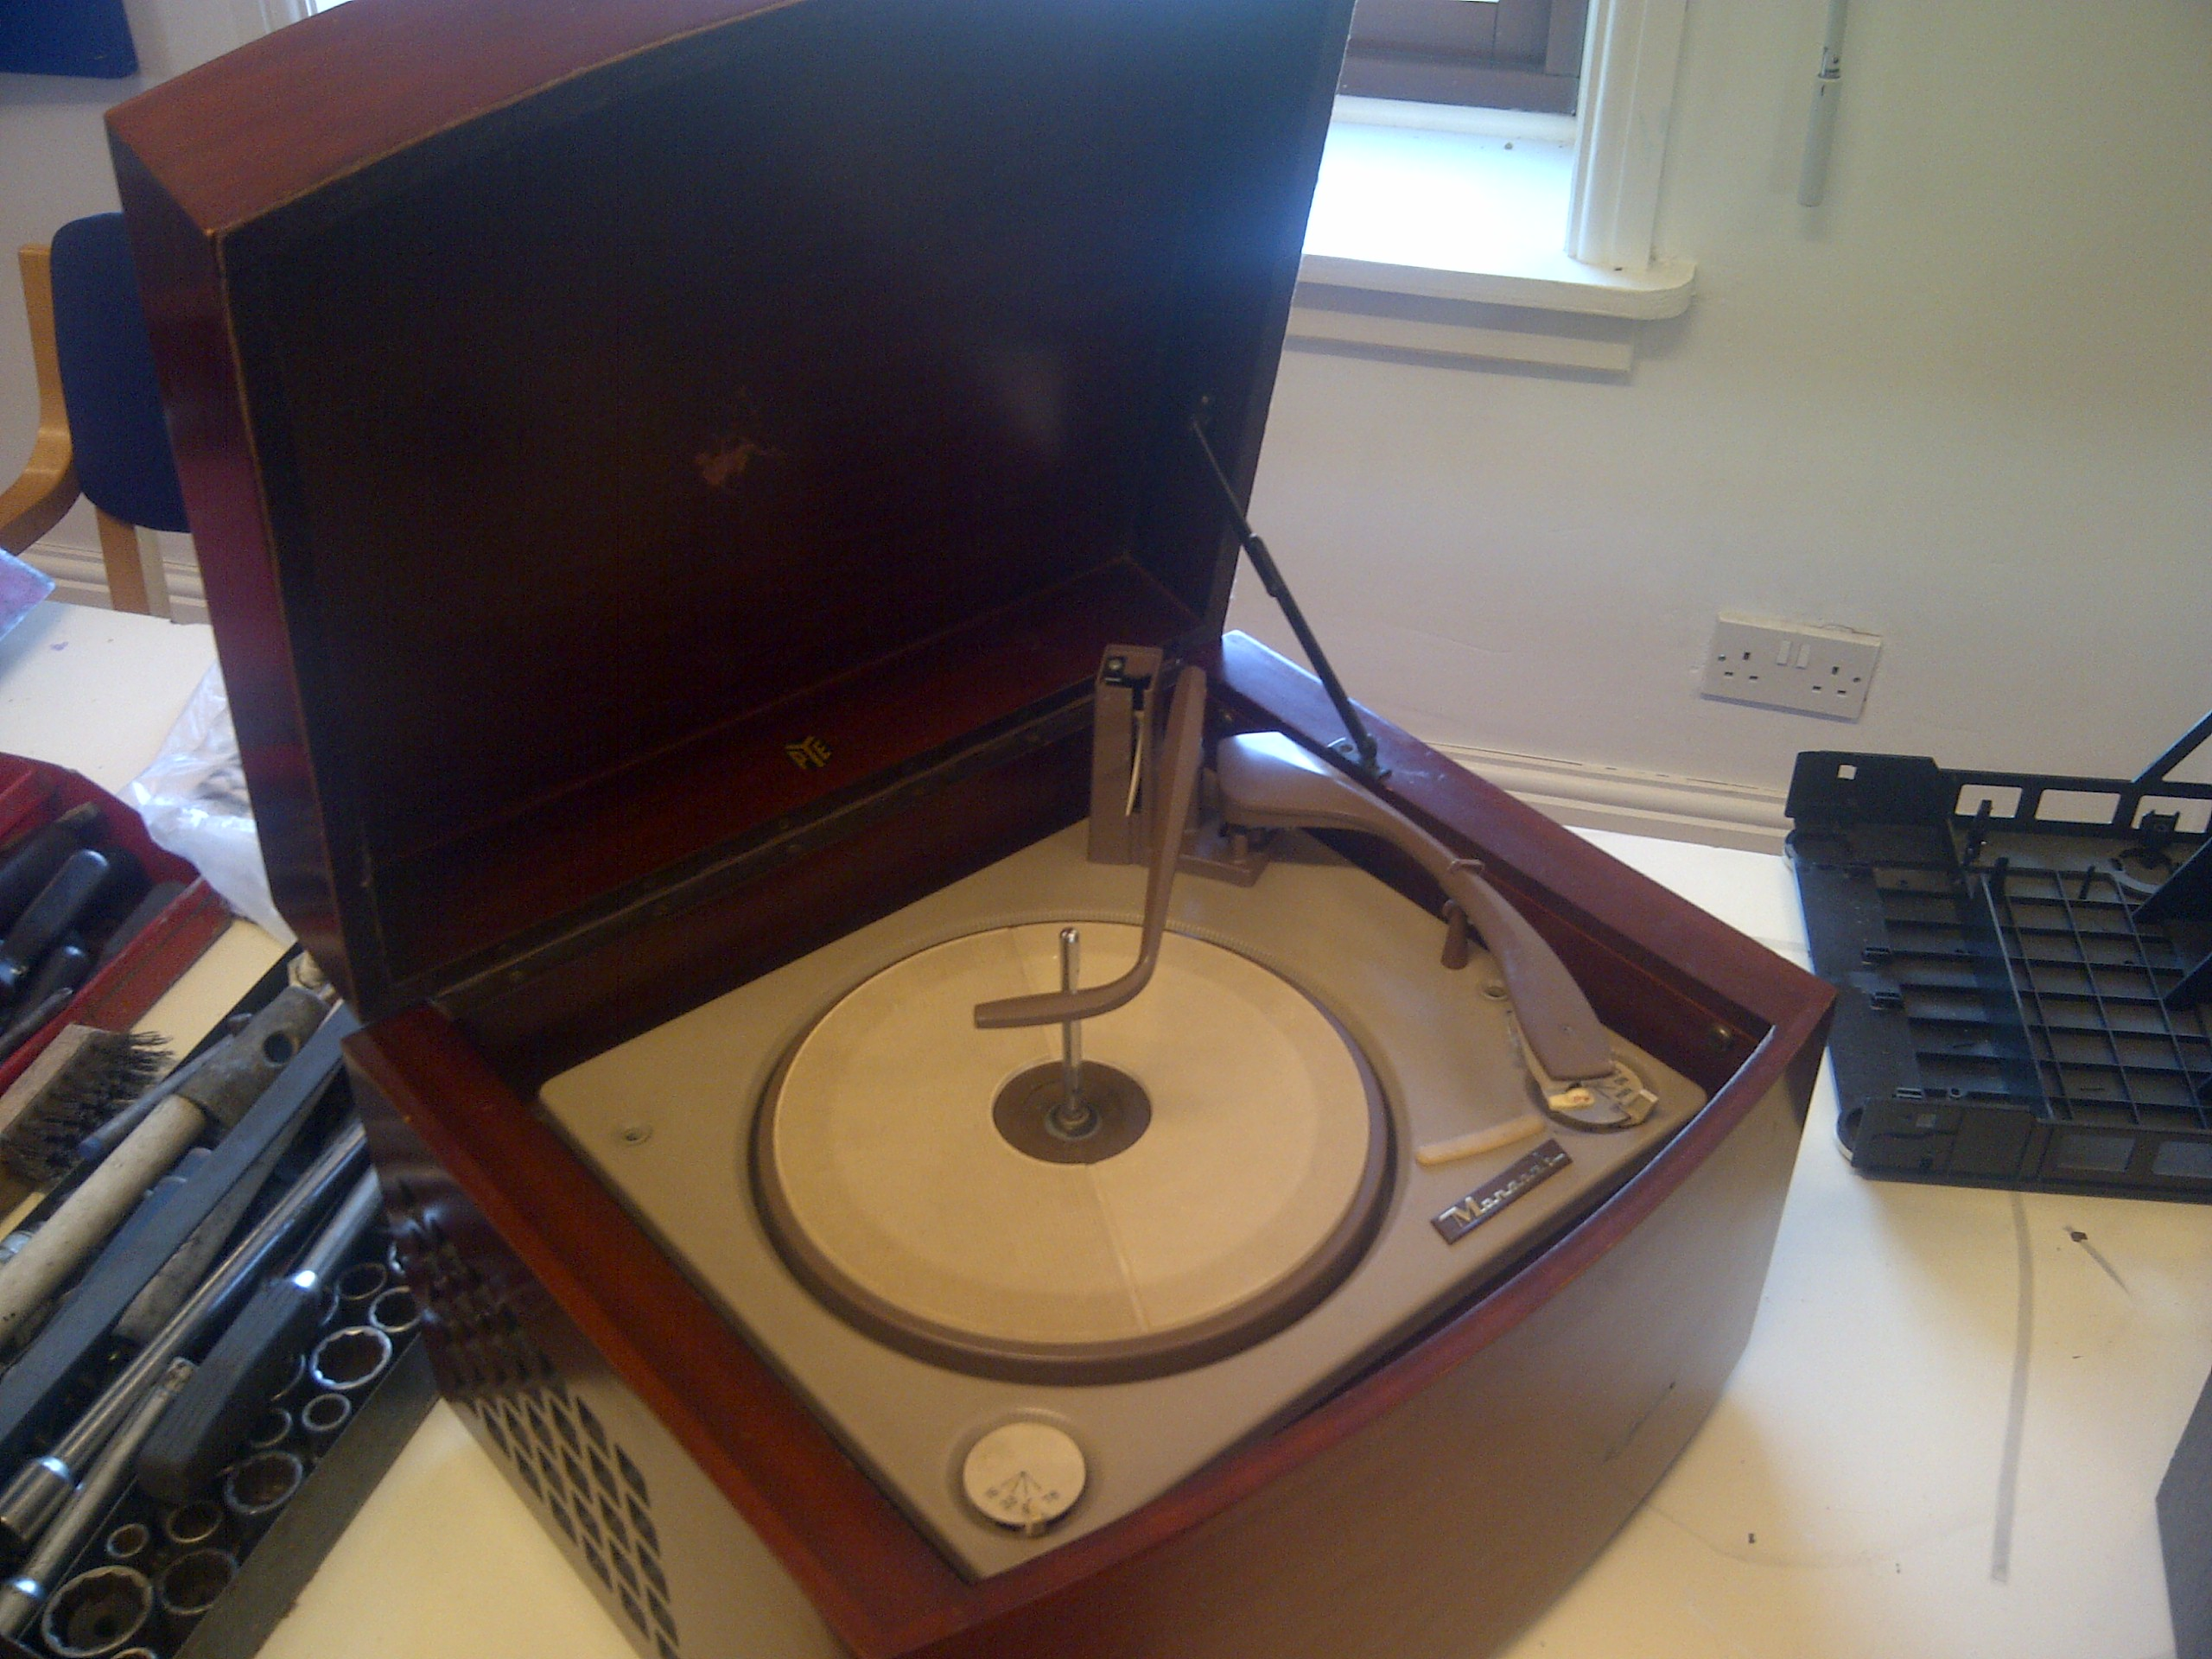 This record player had been rescued from a tip by a relative of the guy who brought it in.